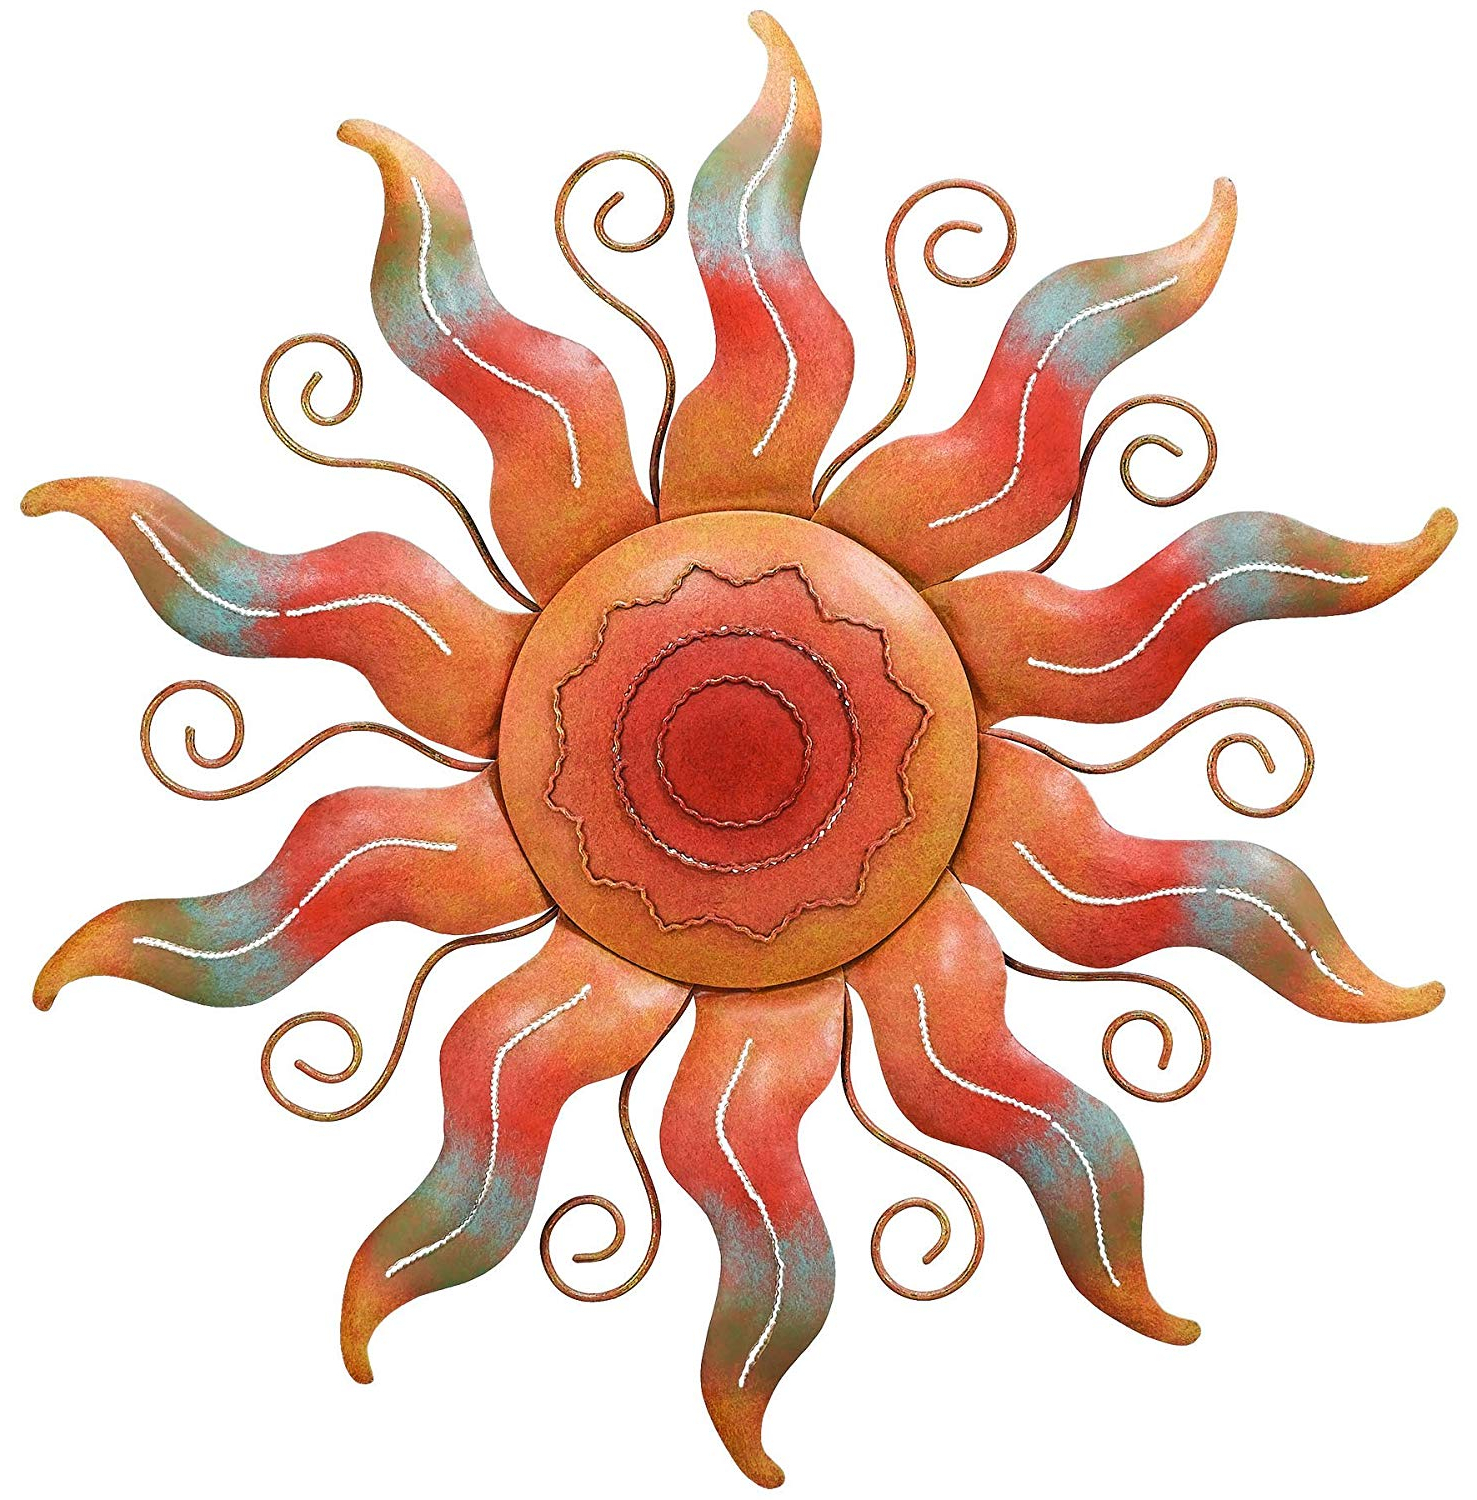 Amazon : Regal Art &gift Sun Wall Decor : Wall Sculptures In Most Recent Aurora Sun Wall Decor (Gallery 11 of 20)